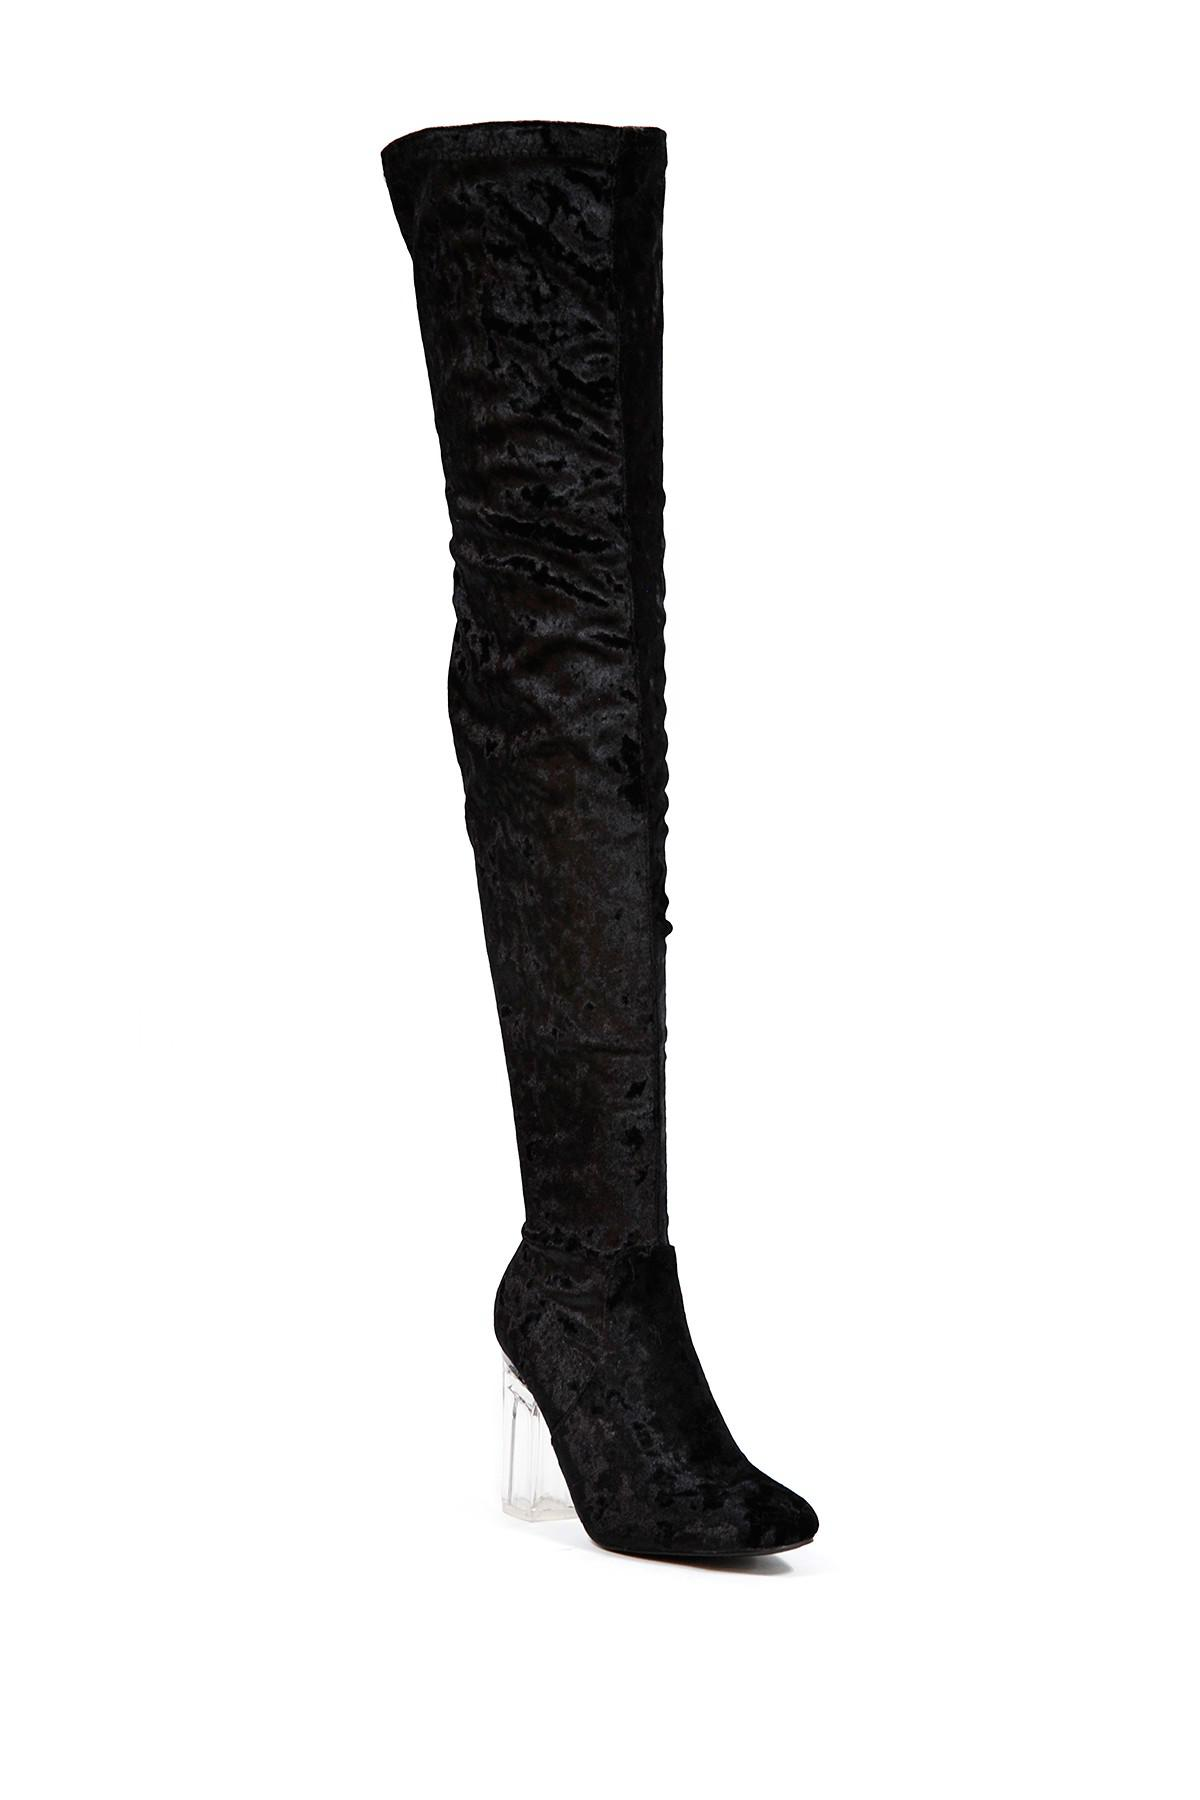 Cape Robbin Fay Over-the-Knee Clear Heel Boot shKR96QdTg